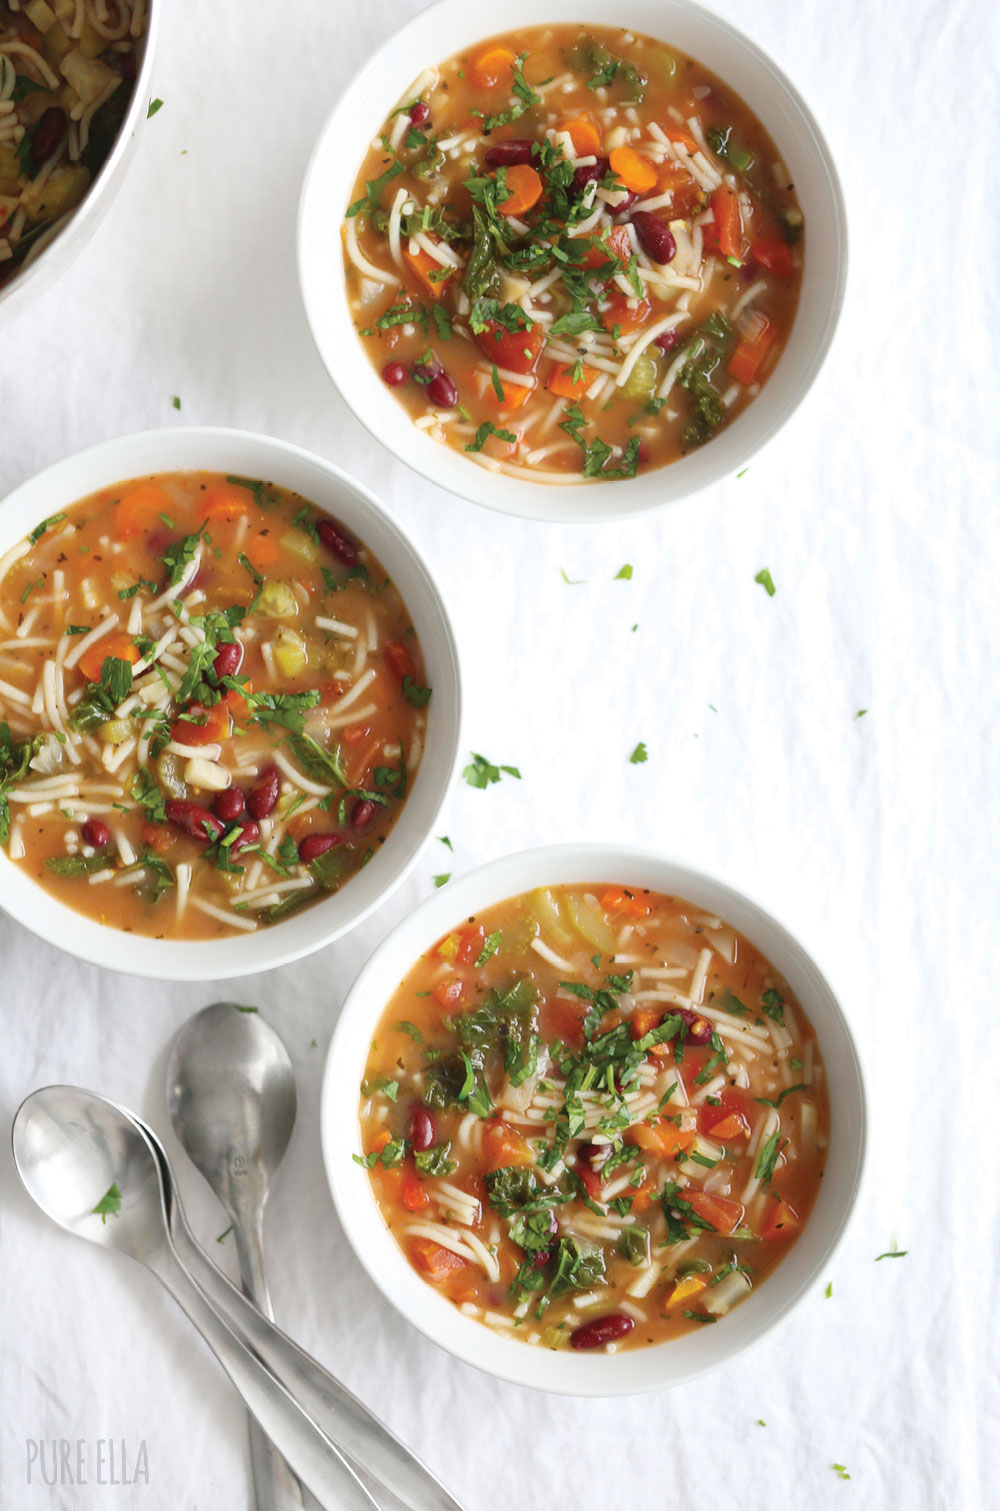 Pure-Ella-One-Pot-Meal-Minestrone-Soup-Recipe2